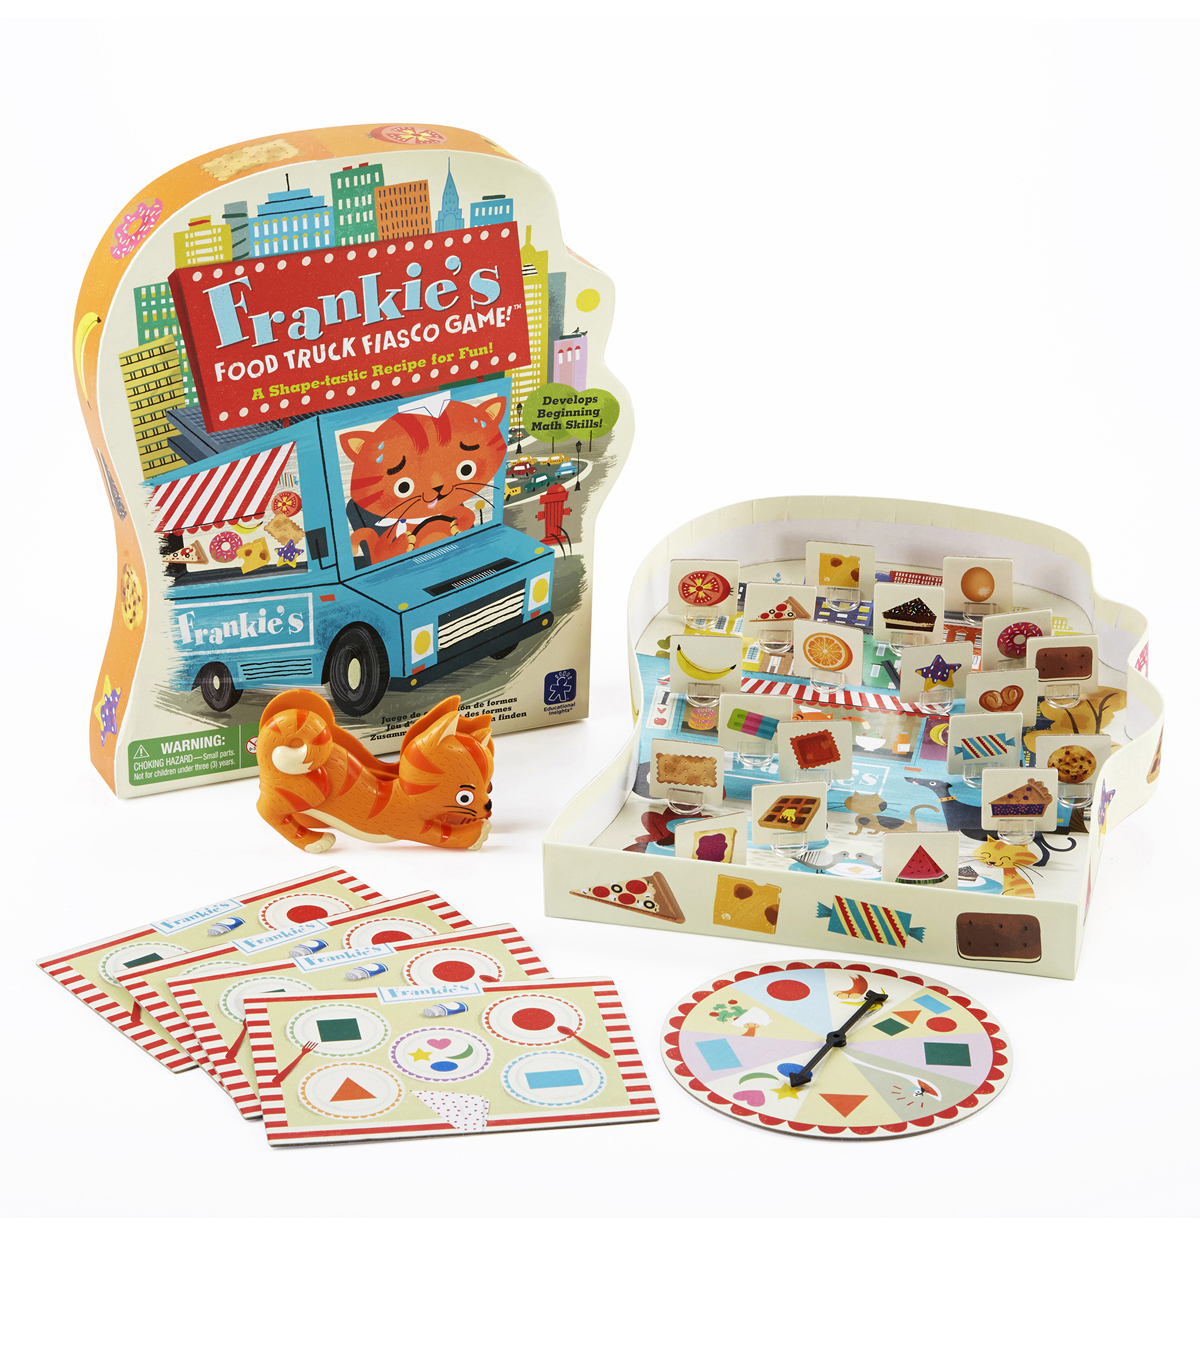 Frankie\u0027s Food Truck Fiasco Game